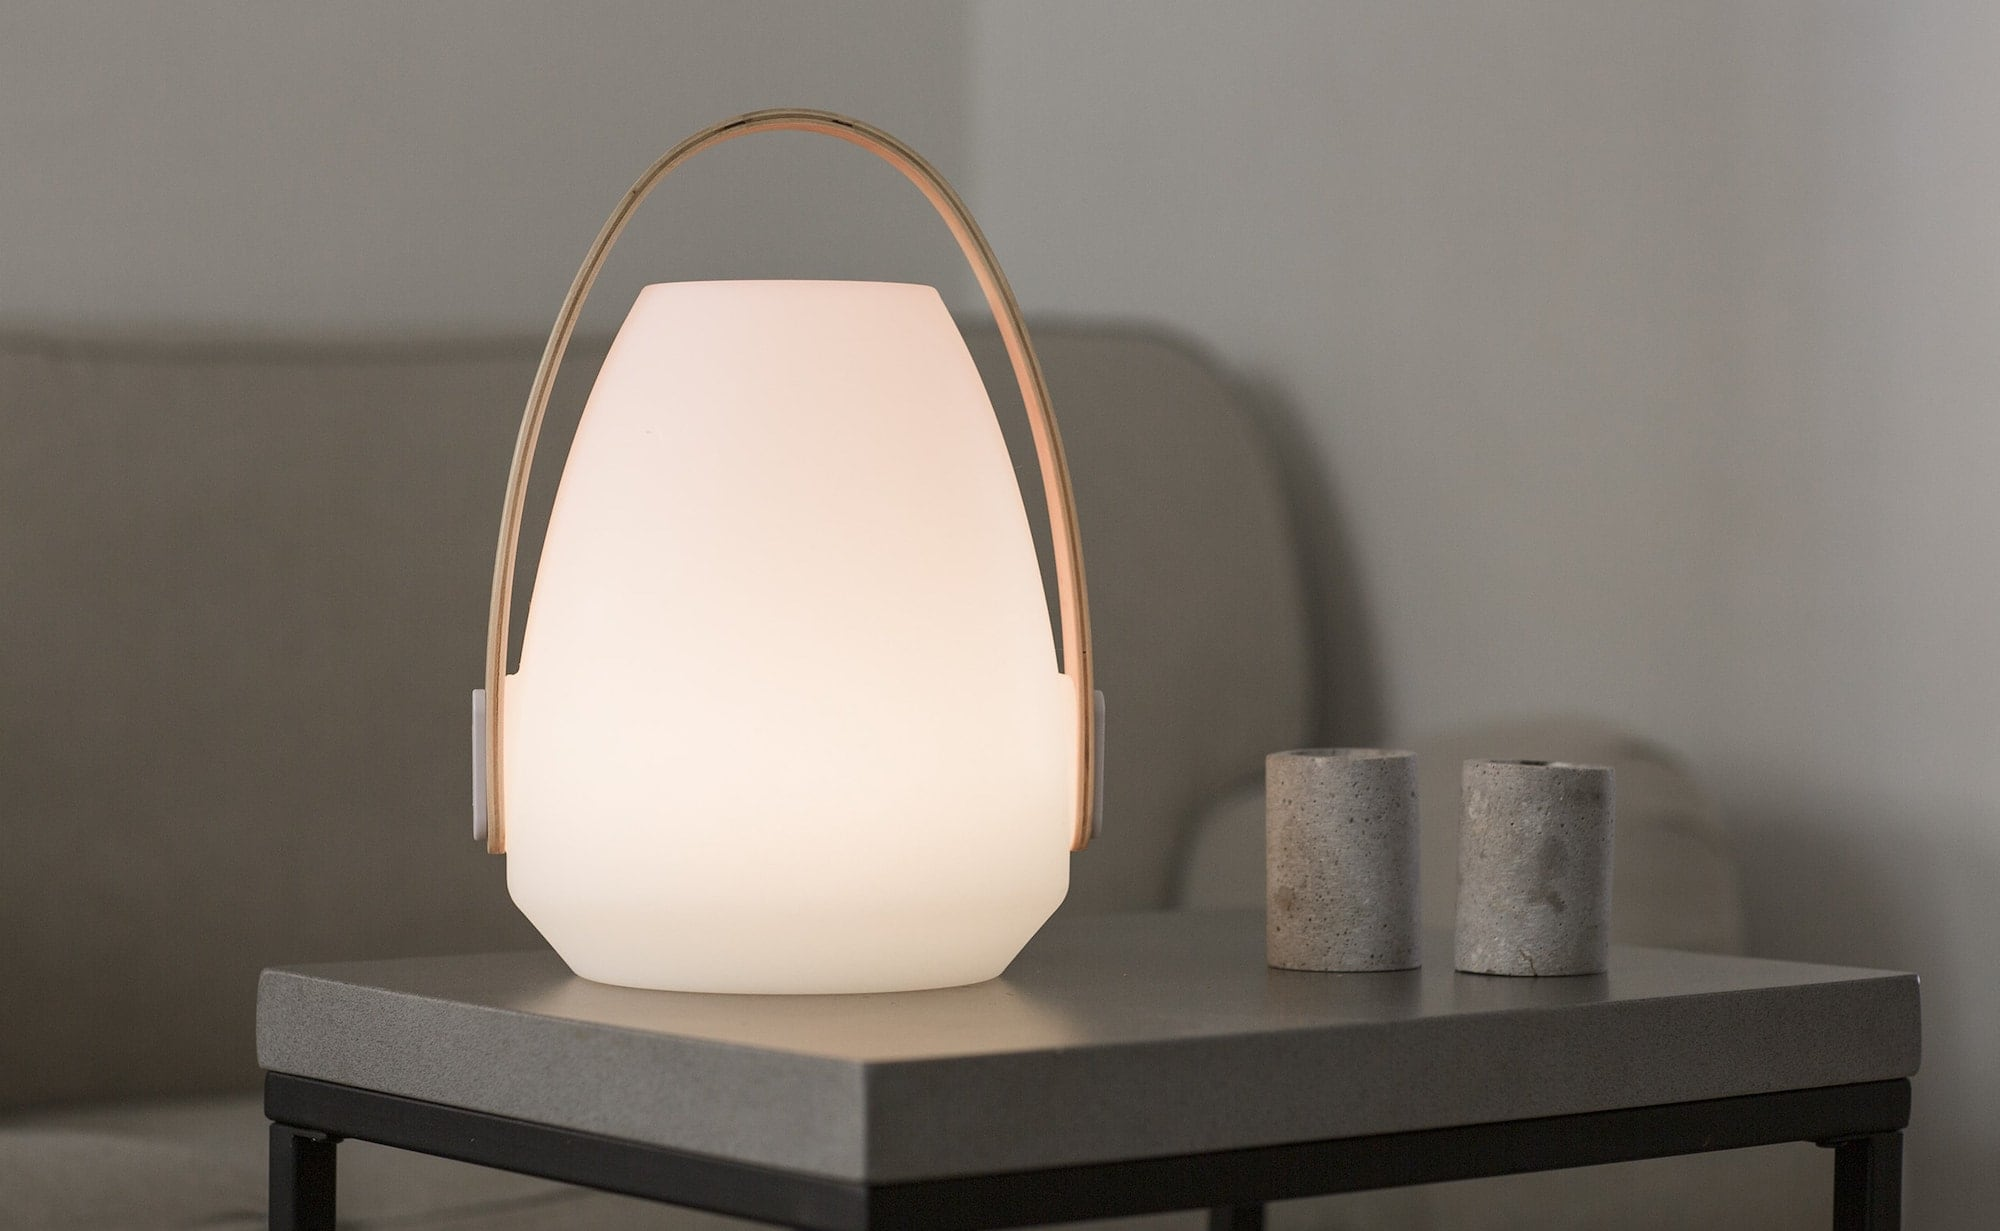 Mooni Andale Speaker Lantern glows in 10 different LED colors